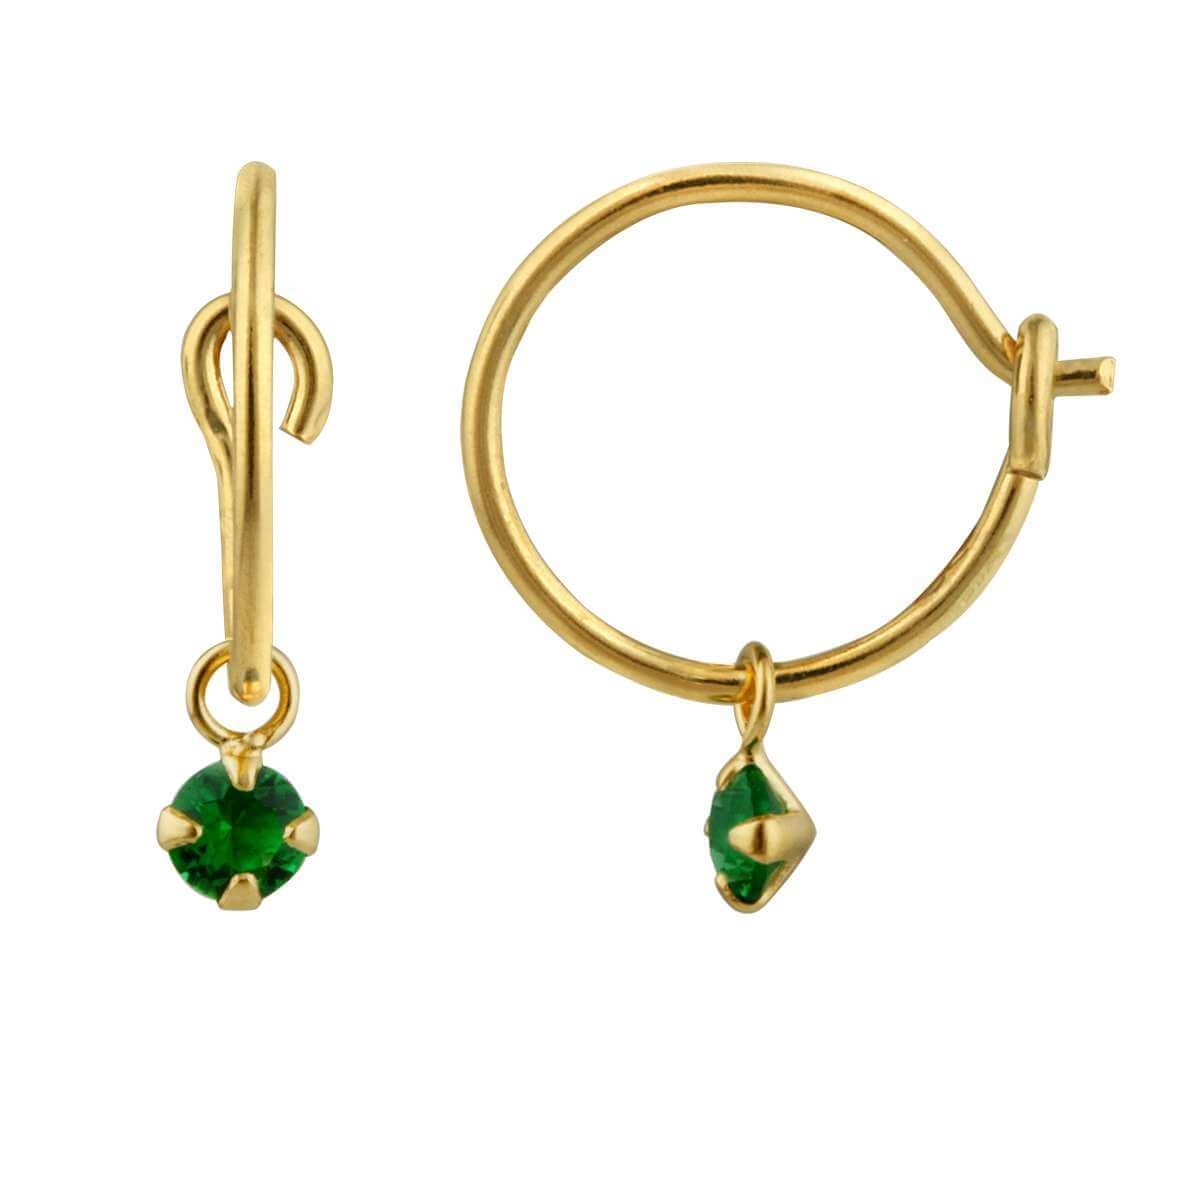 Yellow Gold Plated Sterling Silver & Emerald CZ 3mm Crystal Charm Hoop Earrings